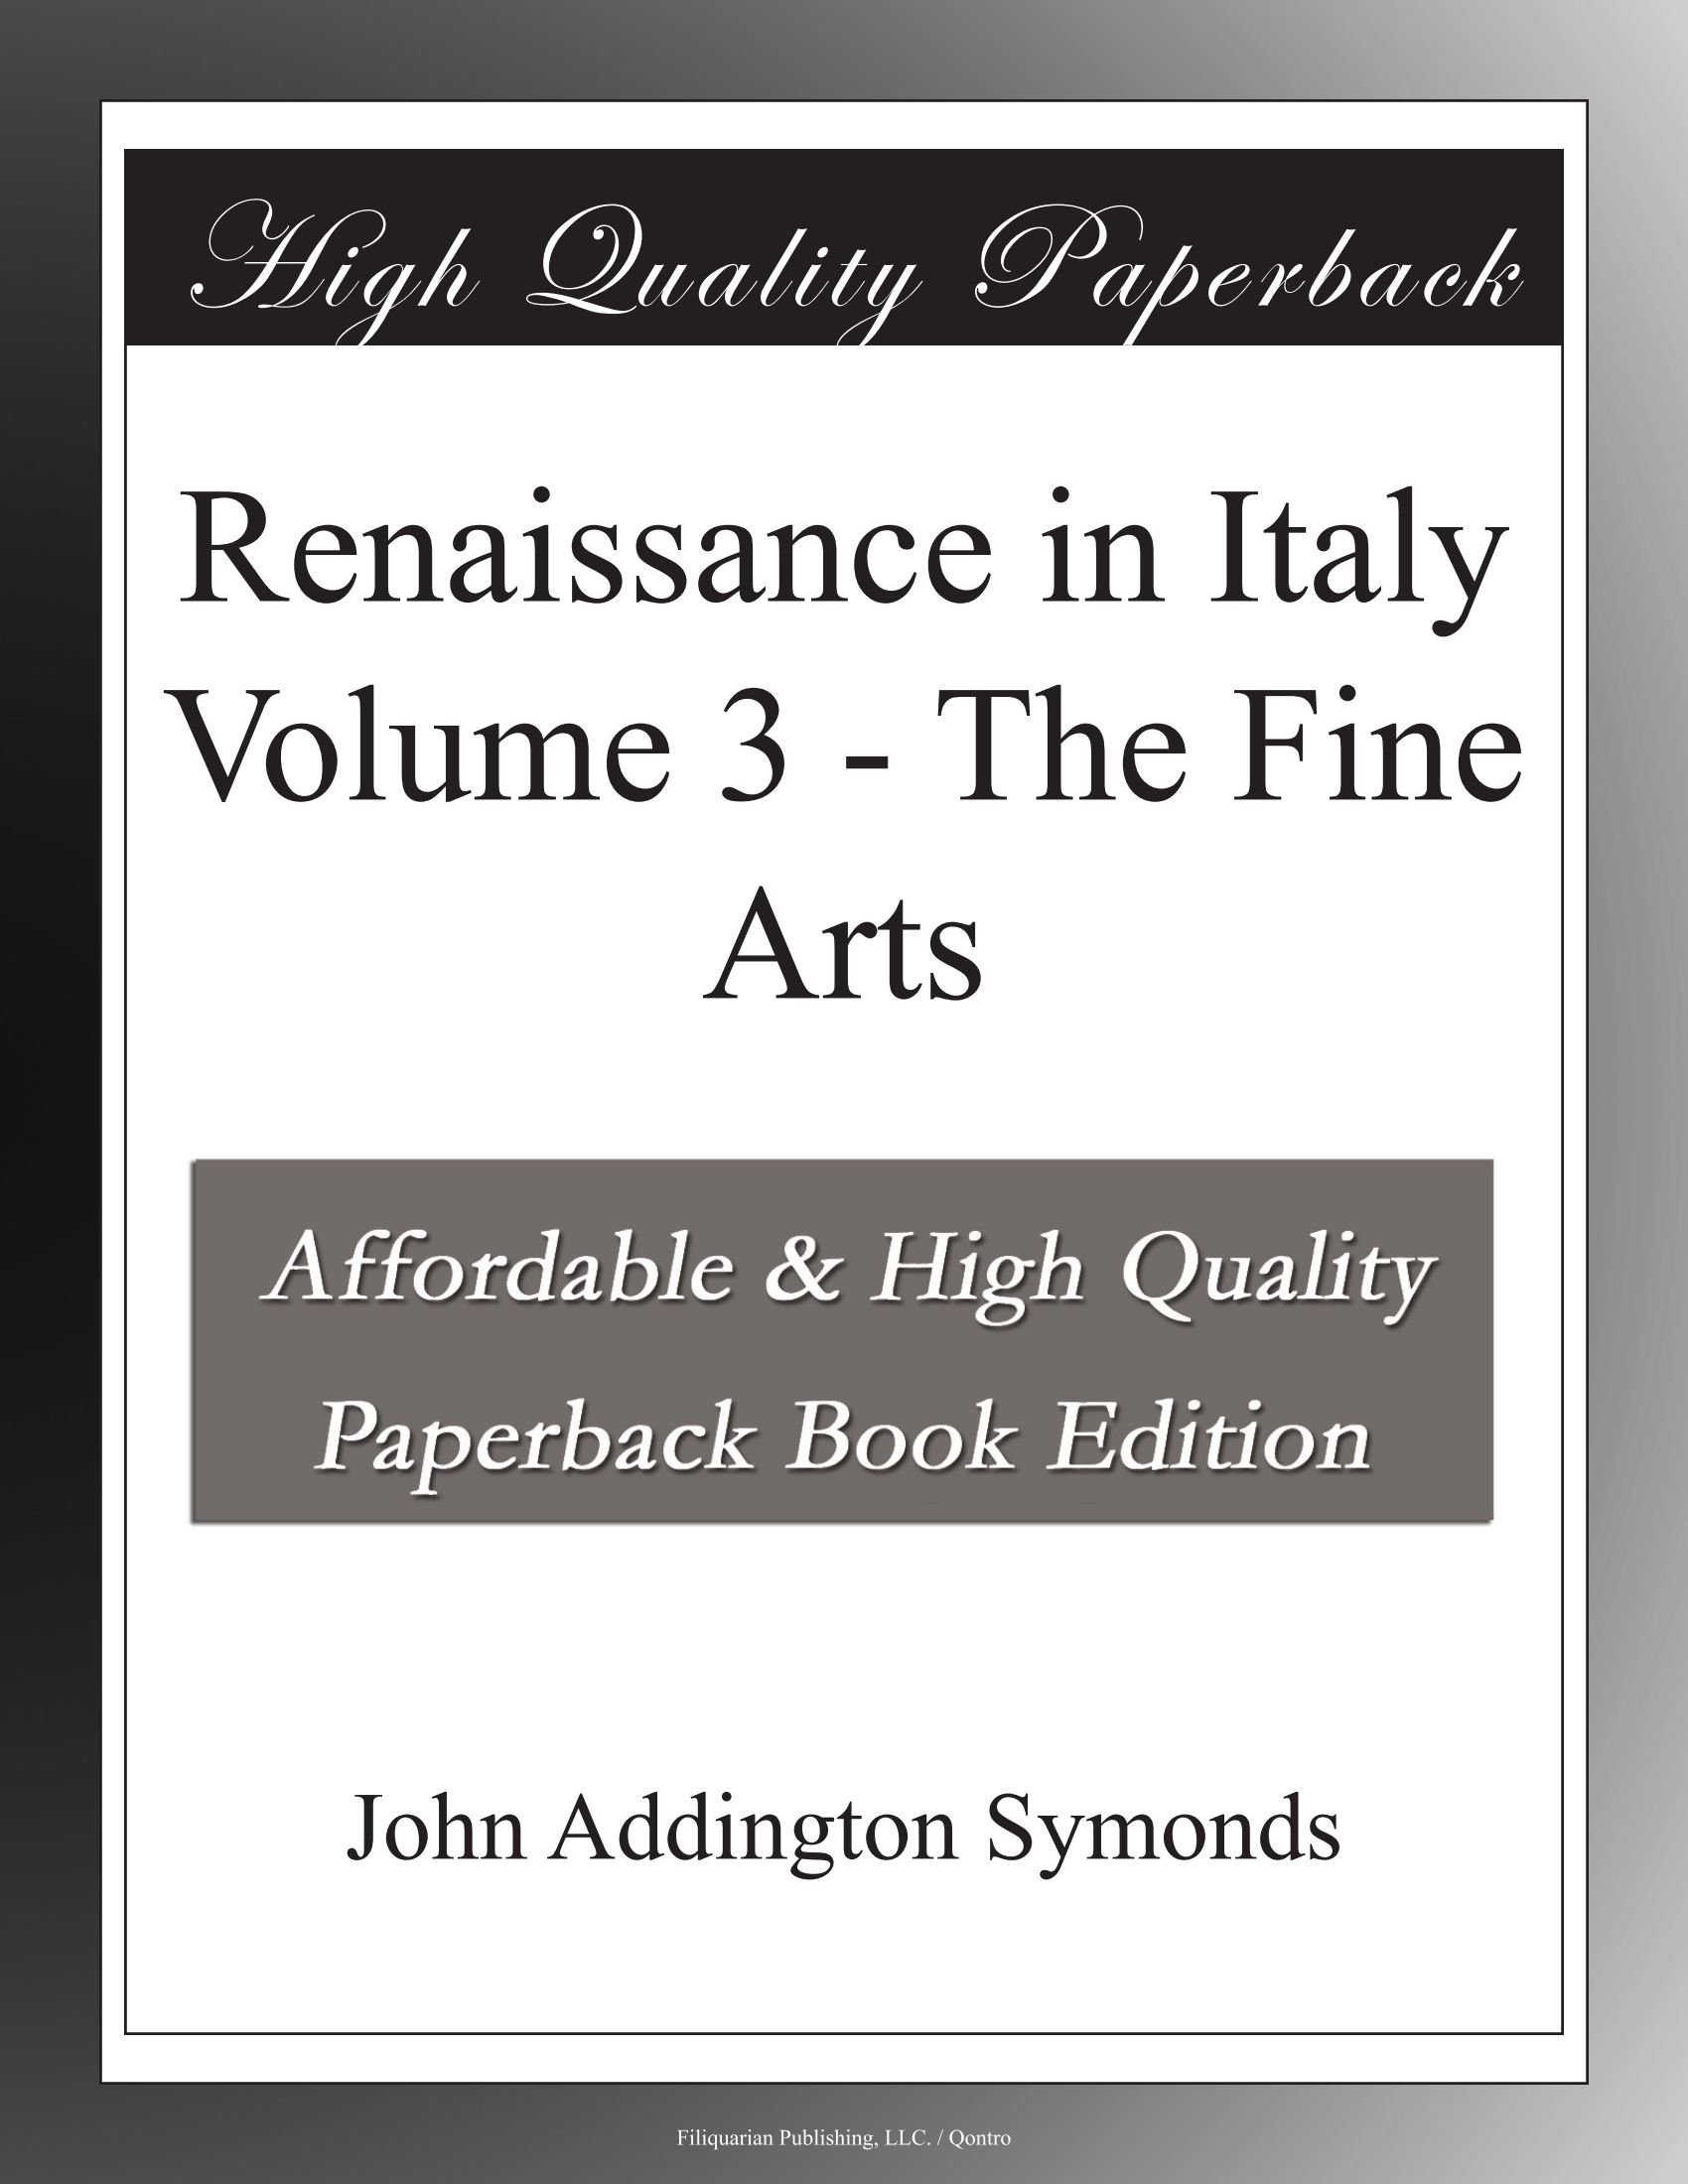 Renaissance in Italy Volume 3 - The Fine Arts PDF